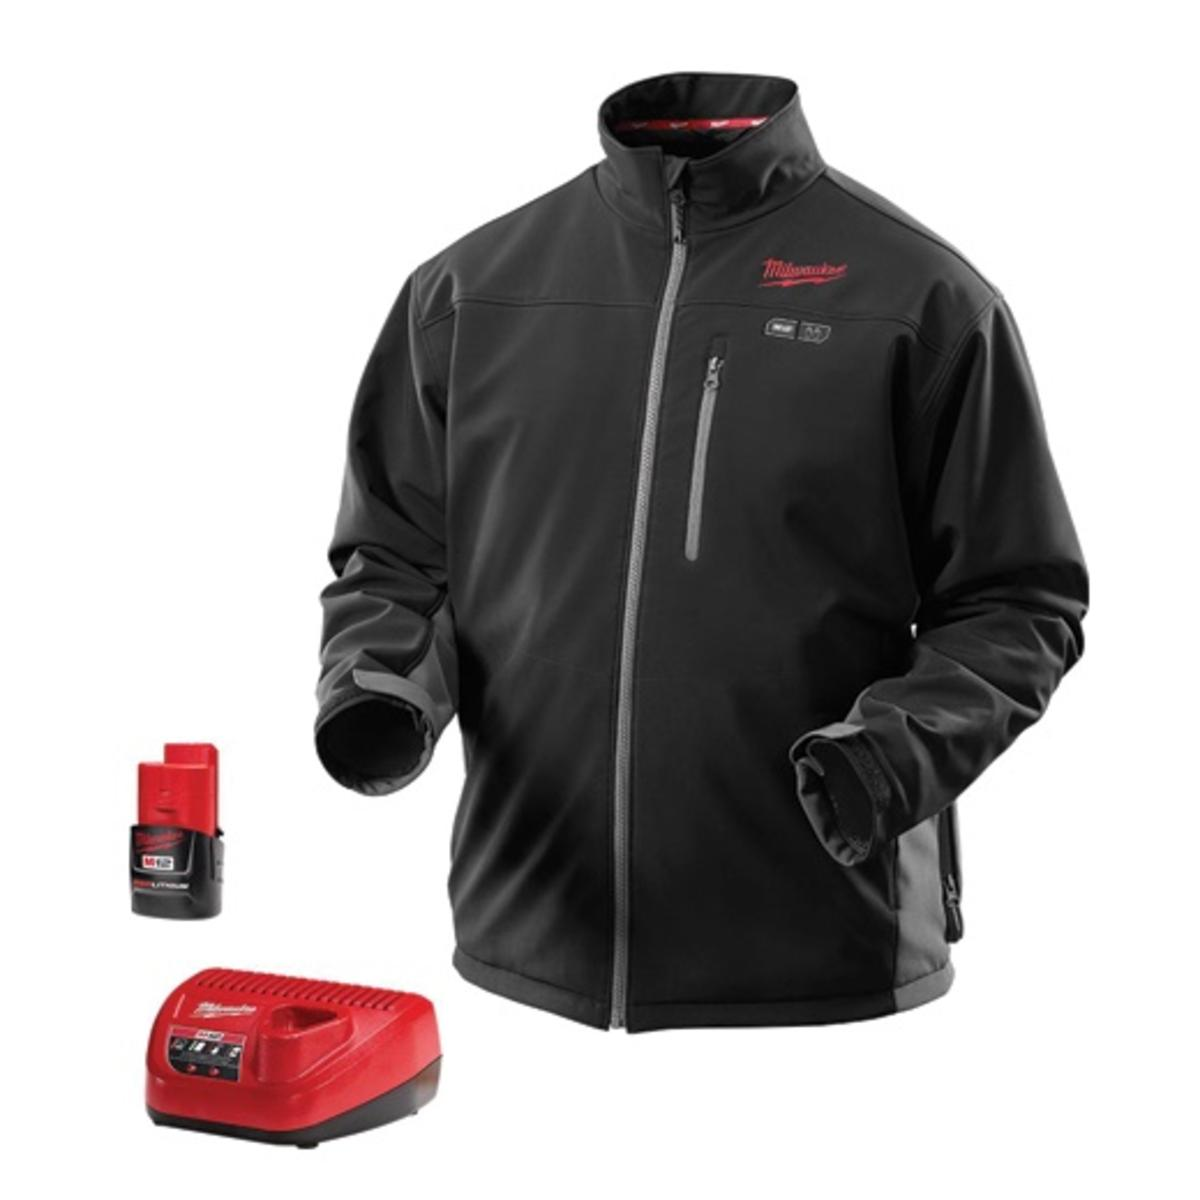 M12 Heated Jacket Milwaukee M12 Toughshell Heated Jacket Kit Black